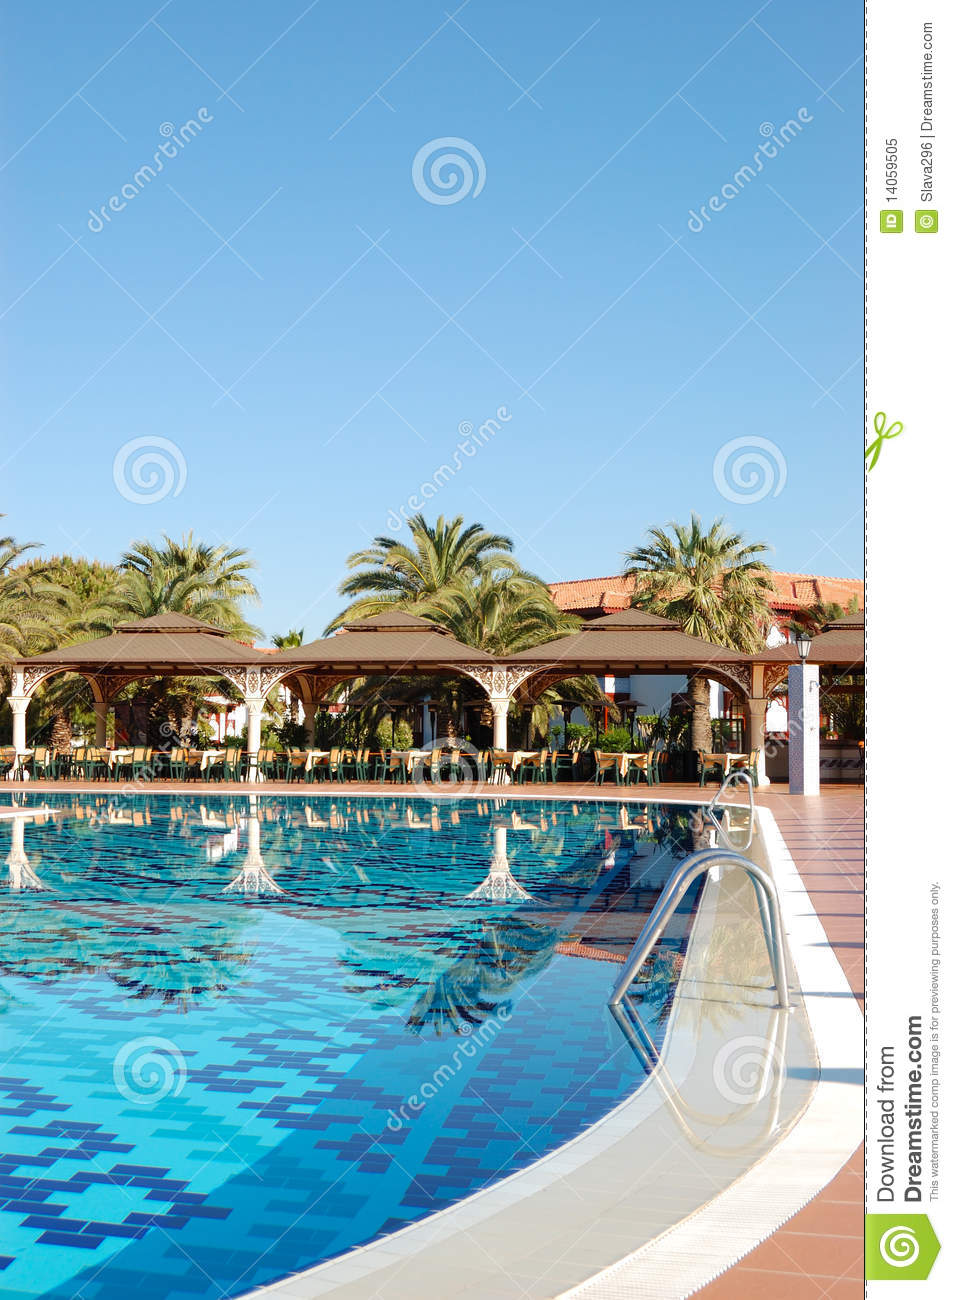 Swimming Pool Near Open Air Restaurant Royalty Free Stock